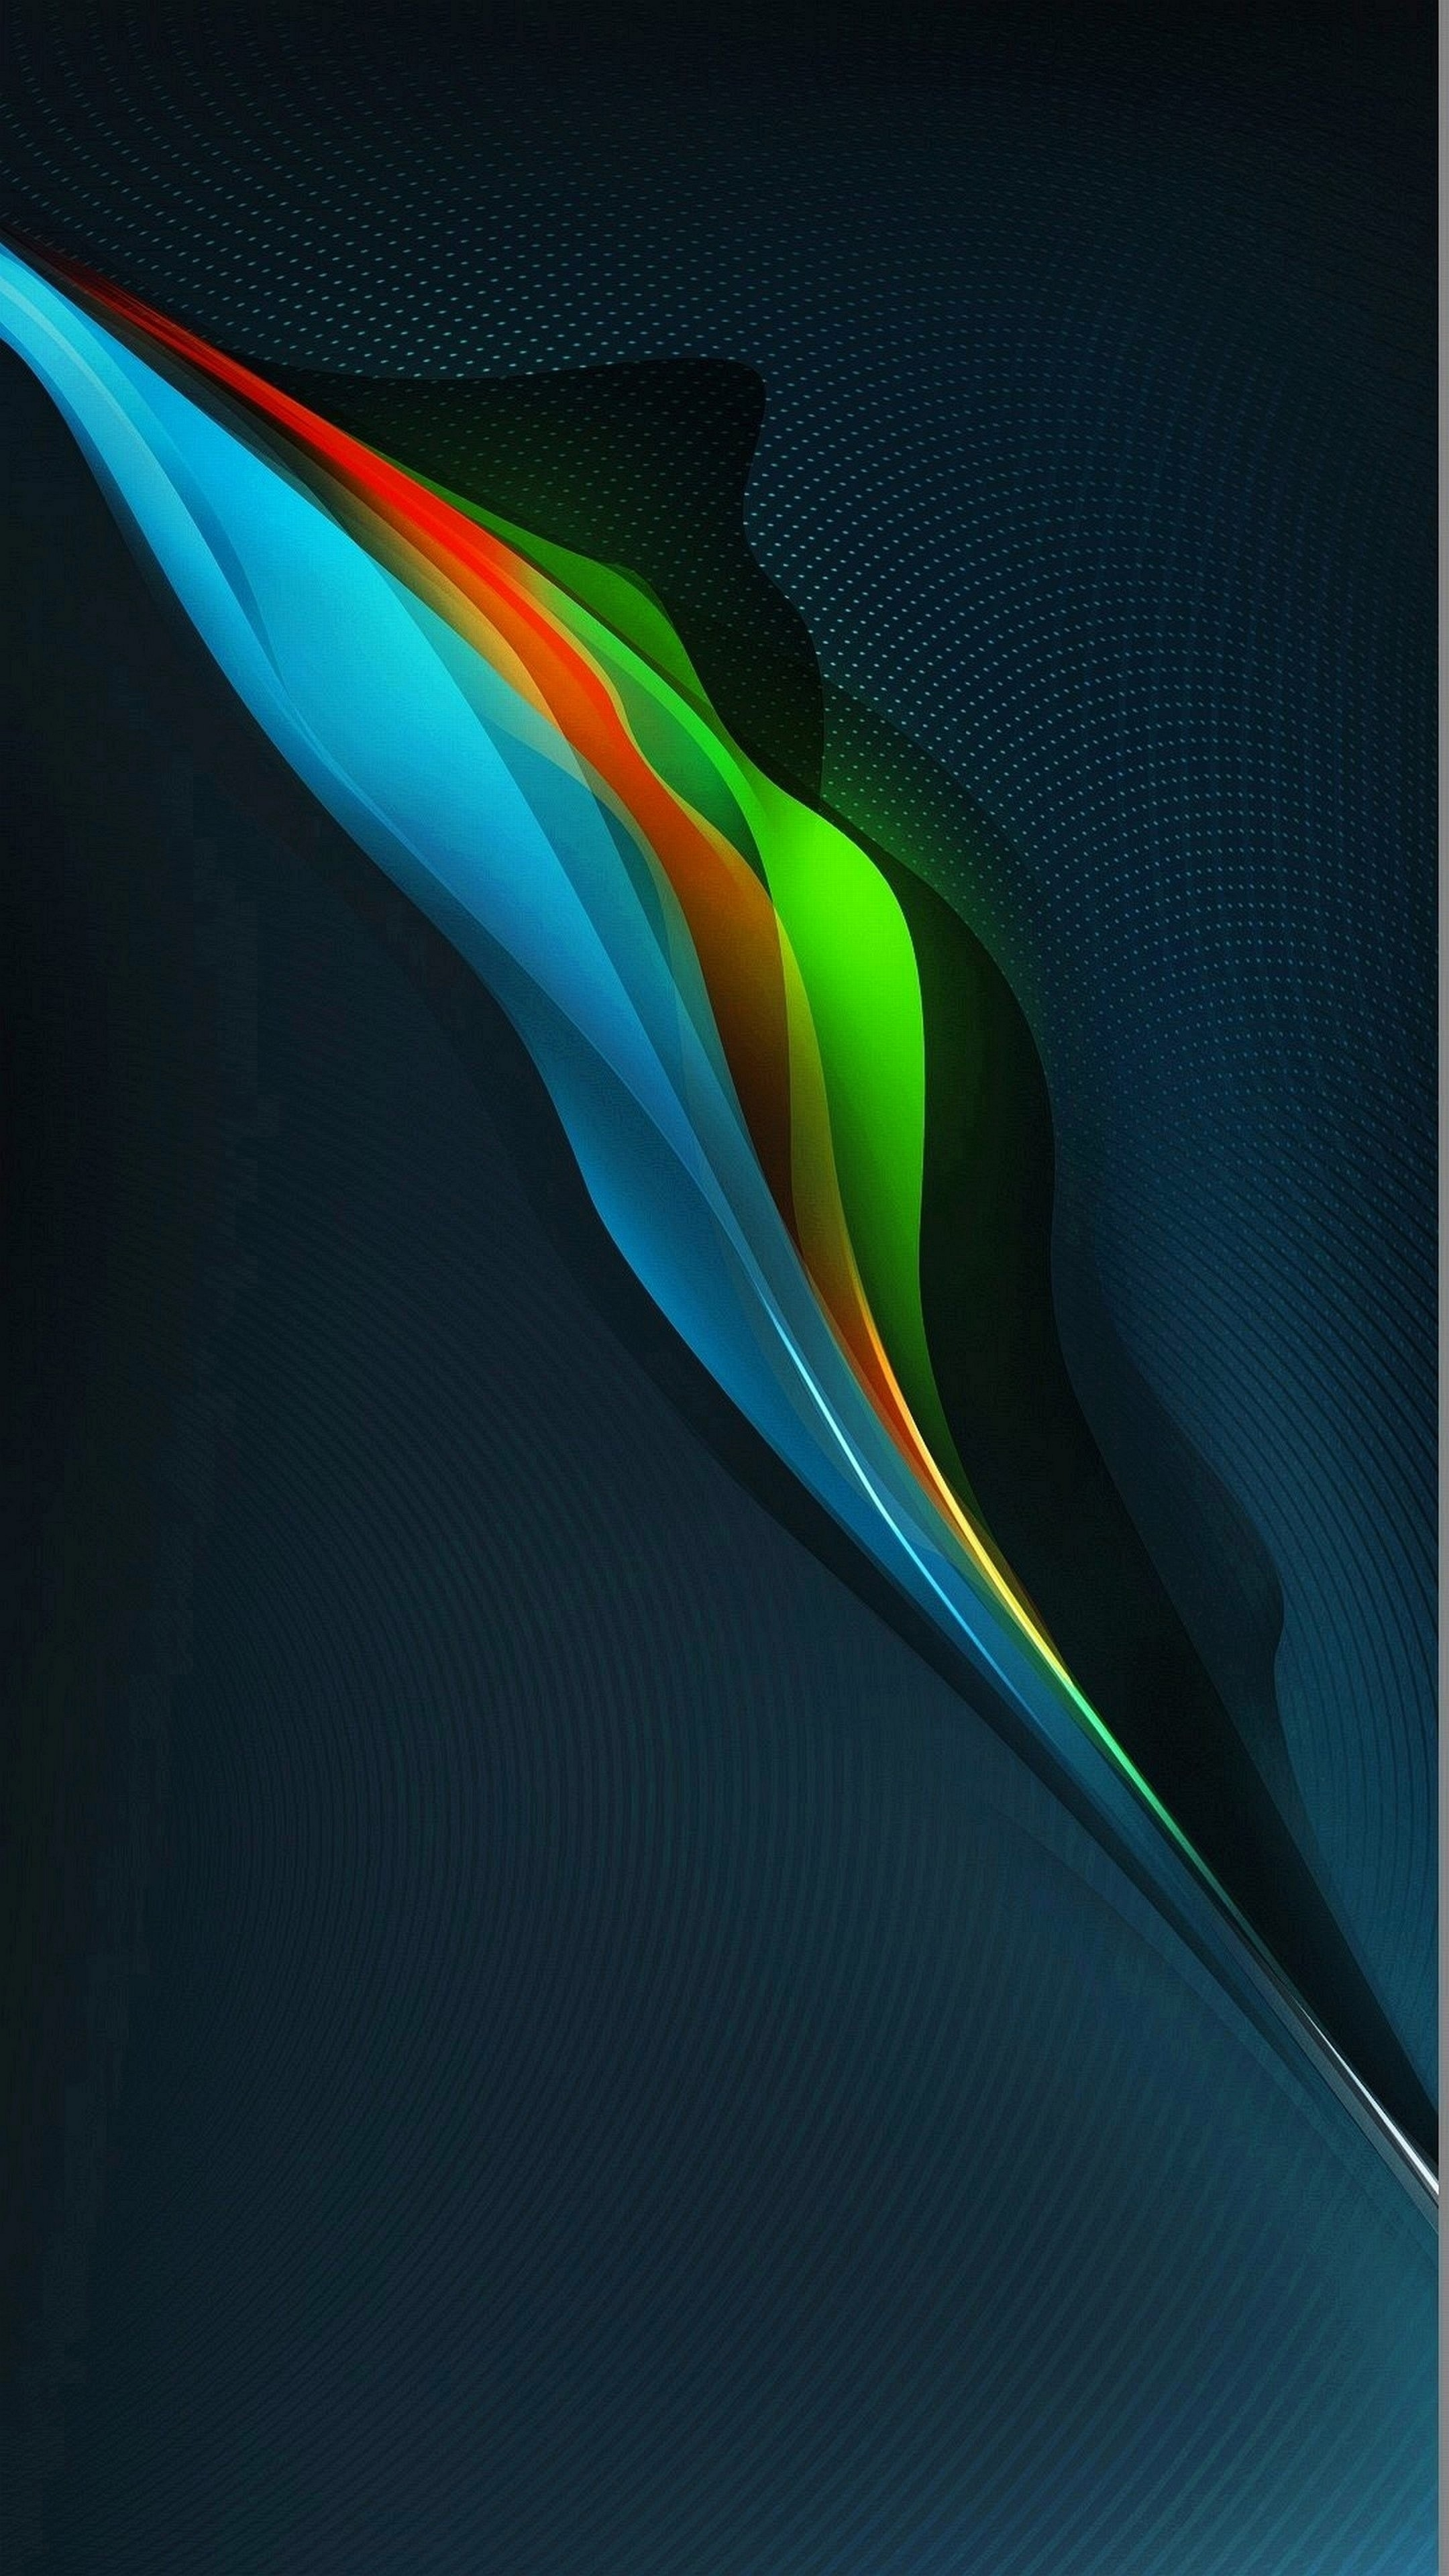 10 New Wallpapers For Note 5 FULL HD 1080p For PC Background